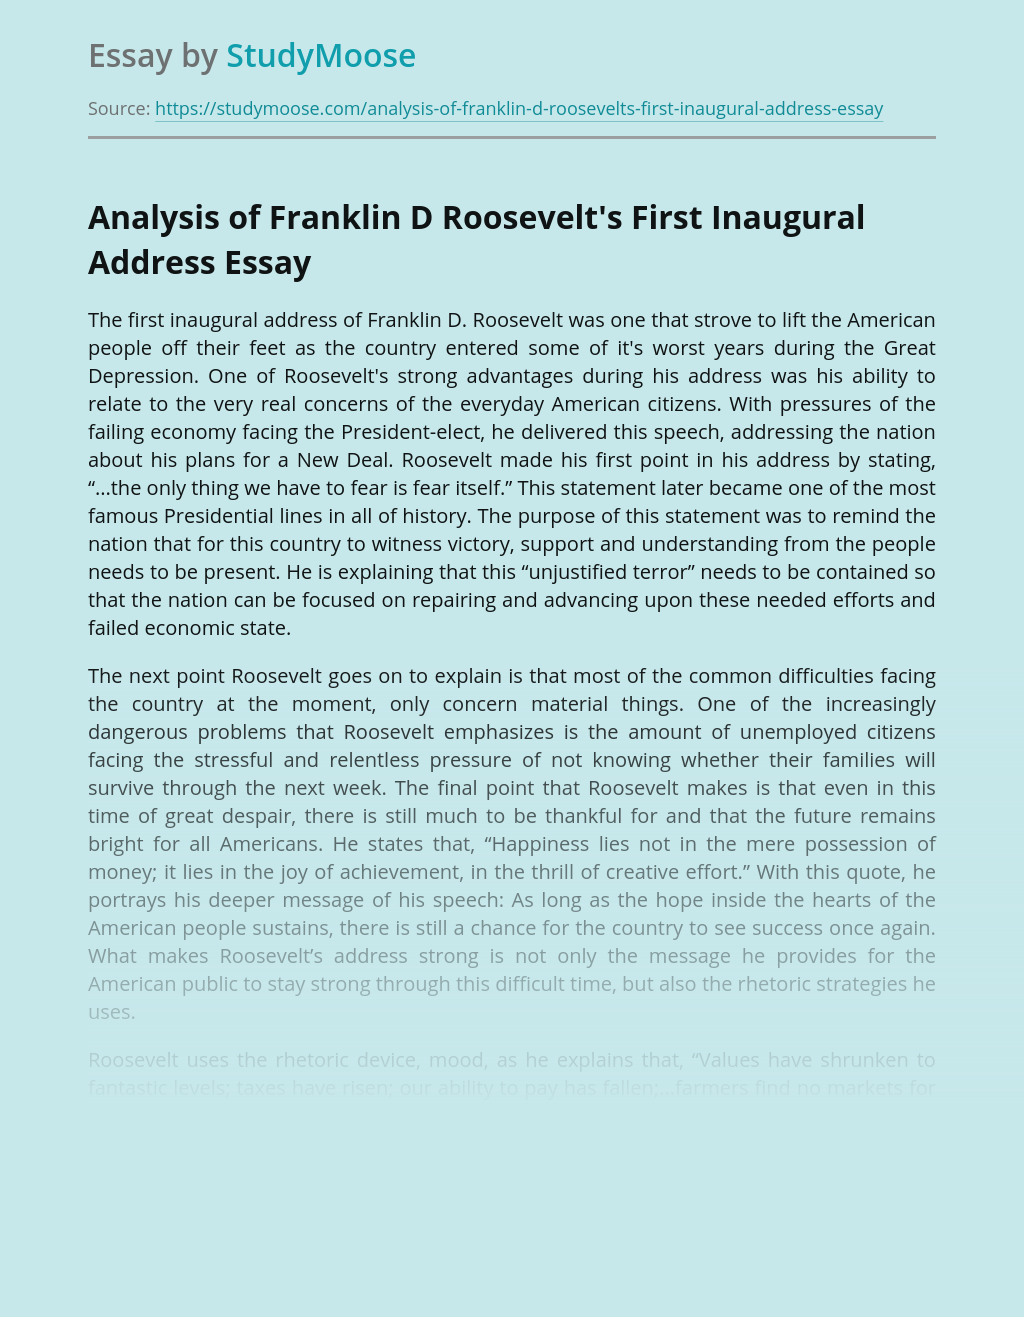 Roosevelt's First Inaugural Address During The Great Depression